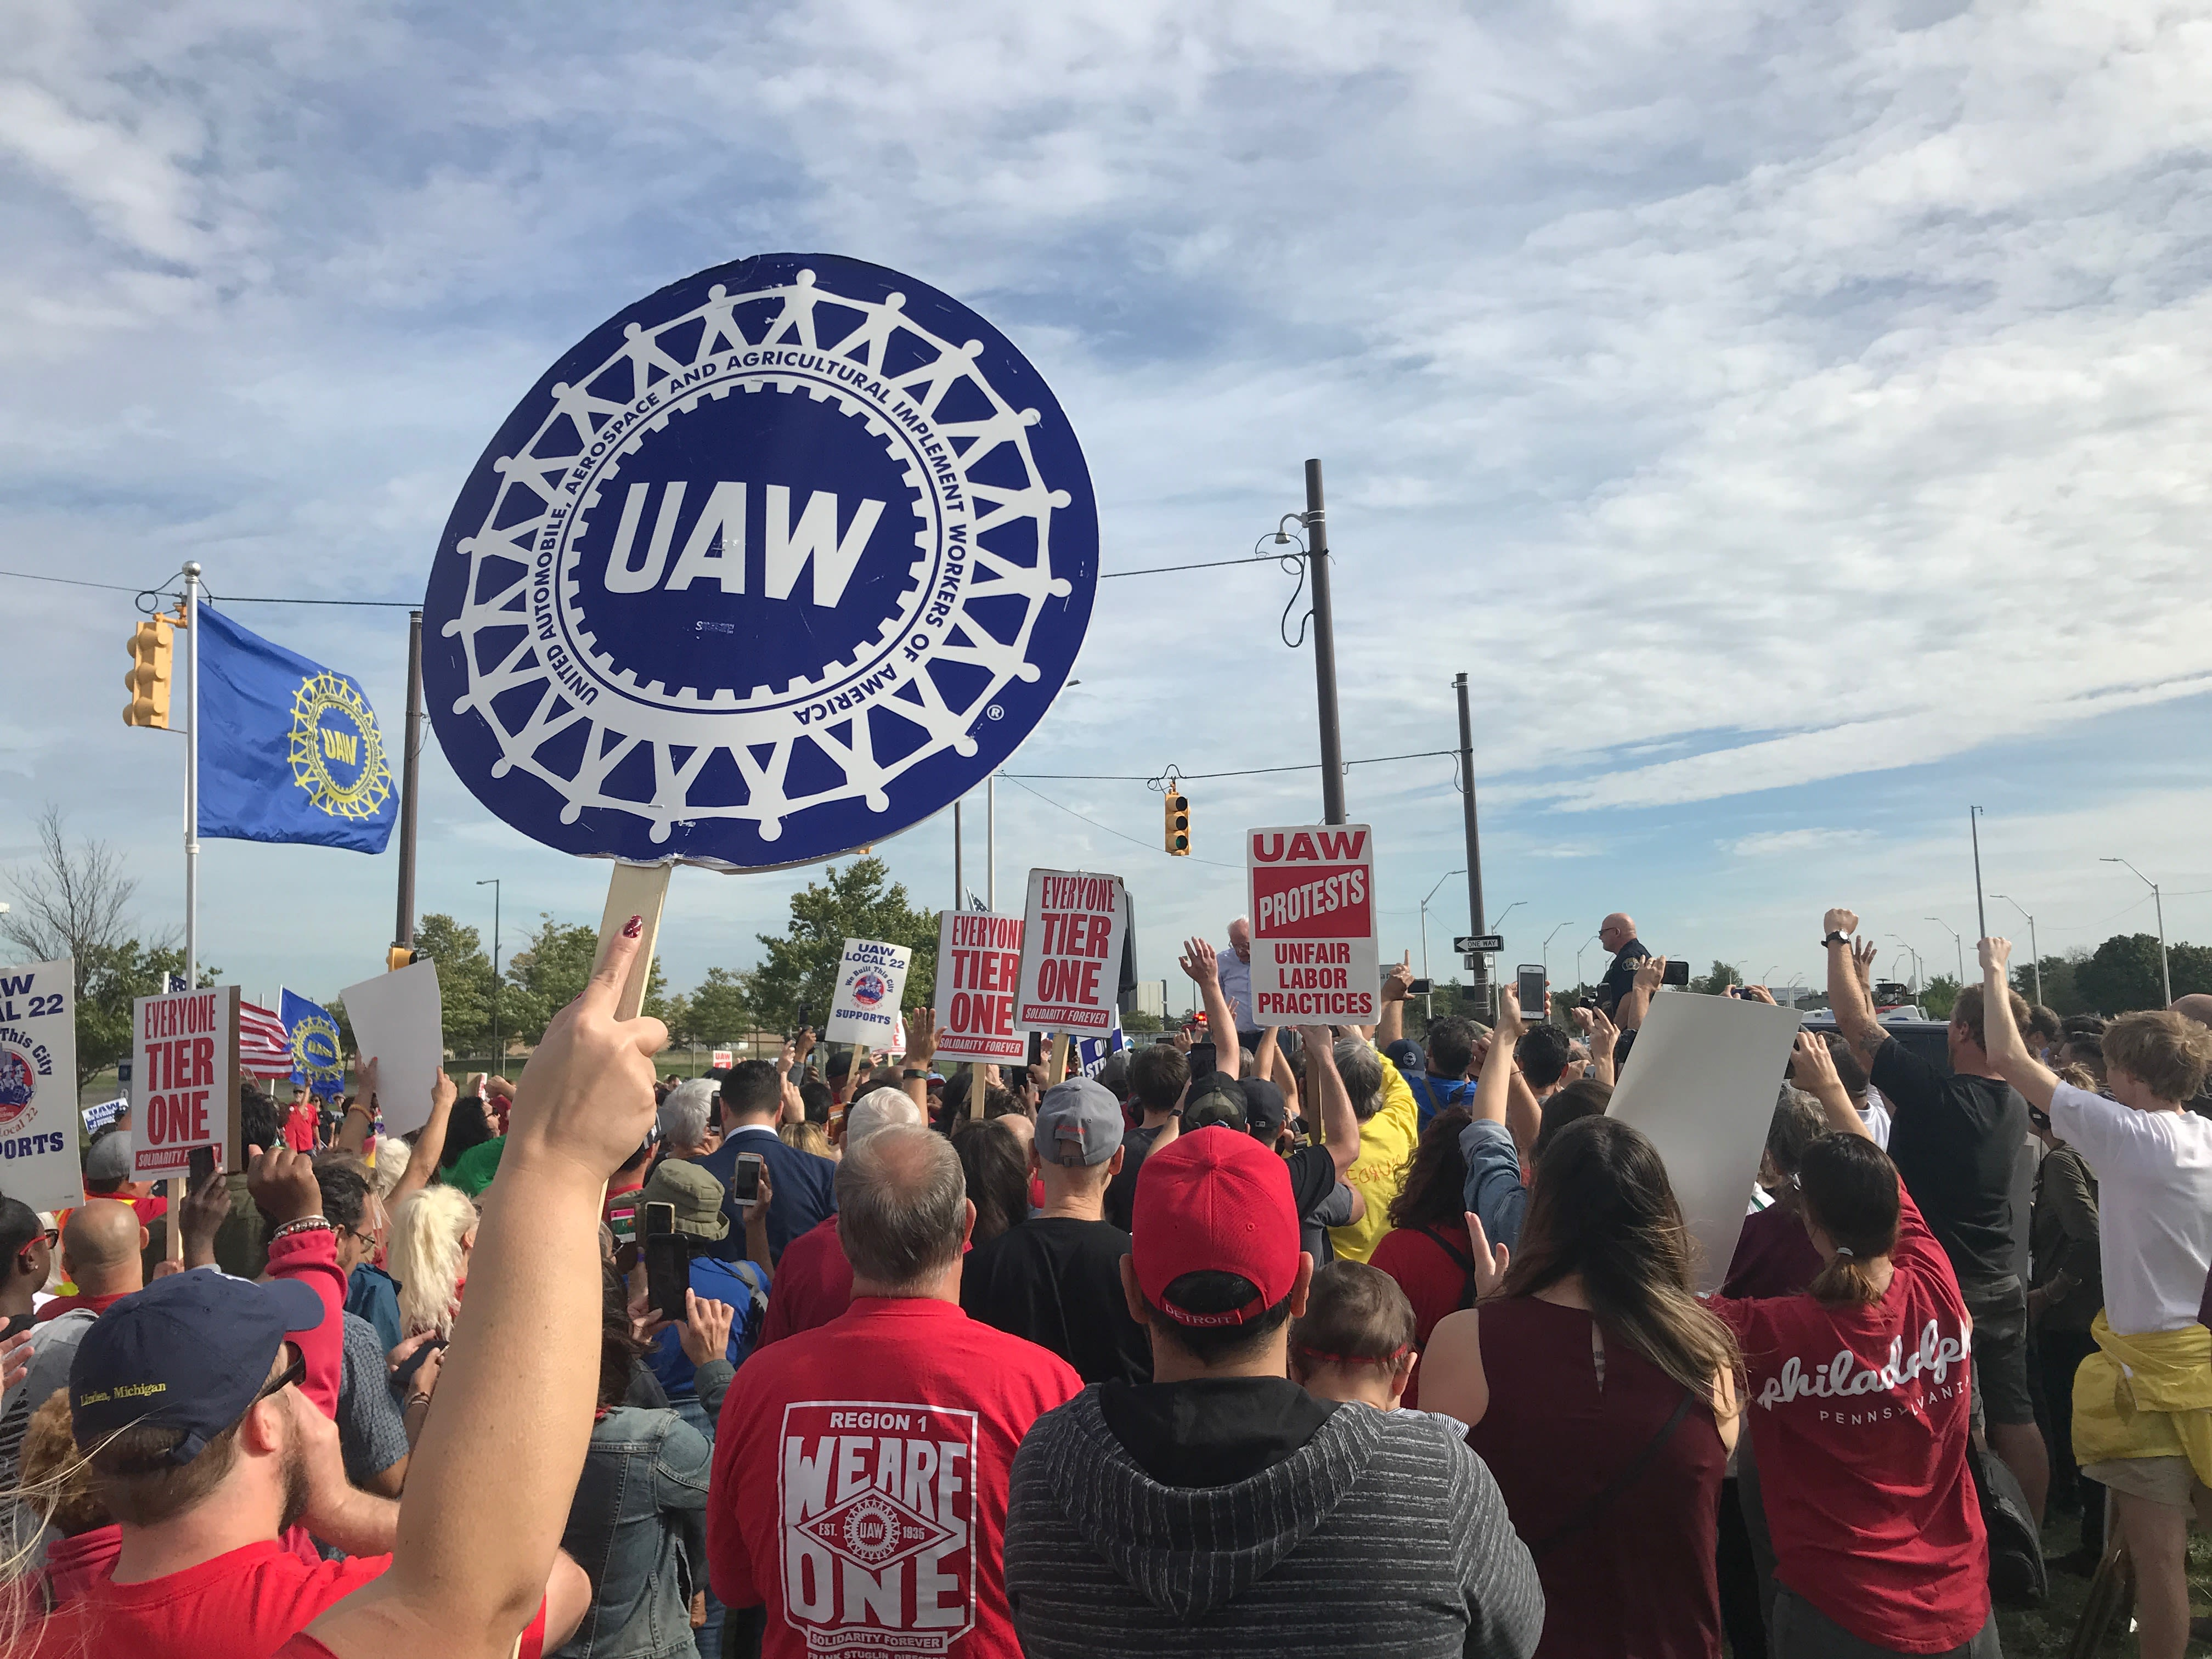 UAW member killed by vehicle while picketing against GM in Tennessee